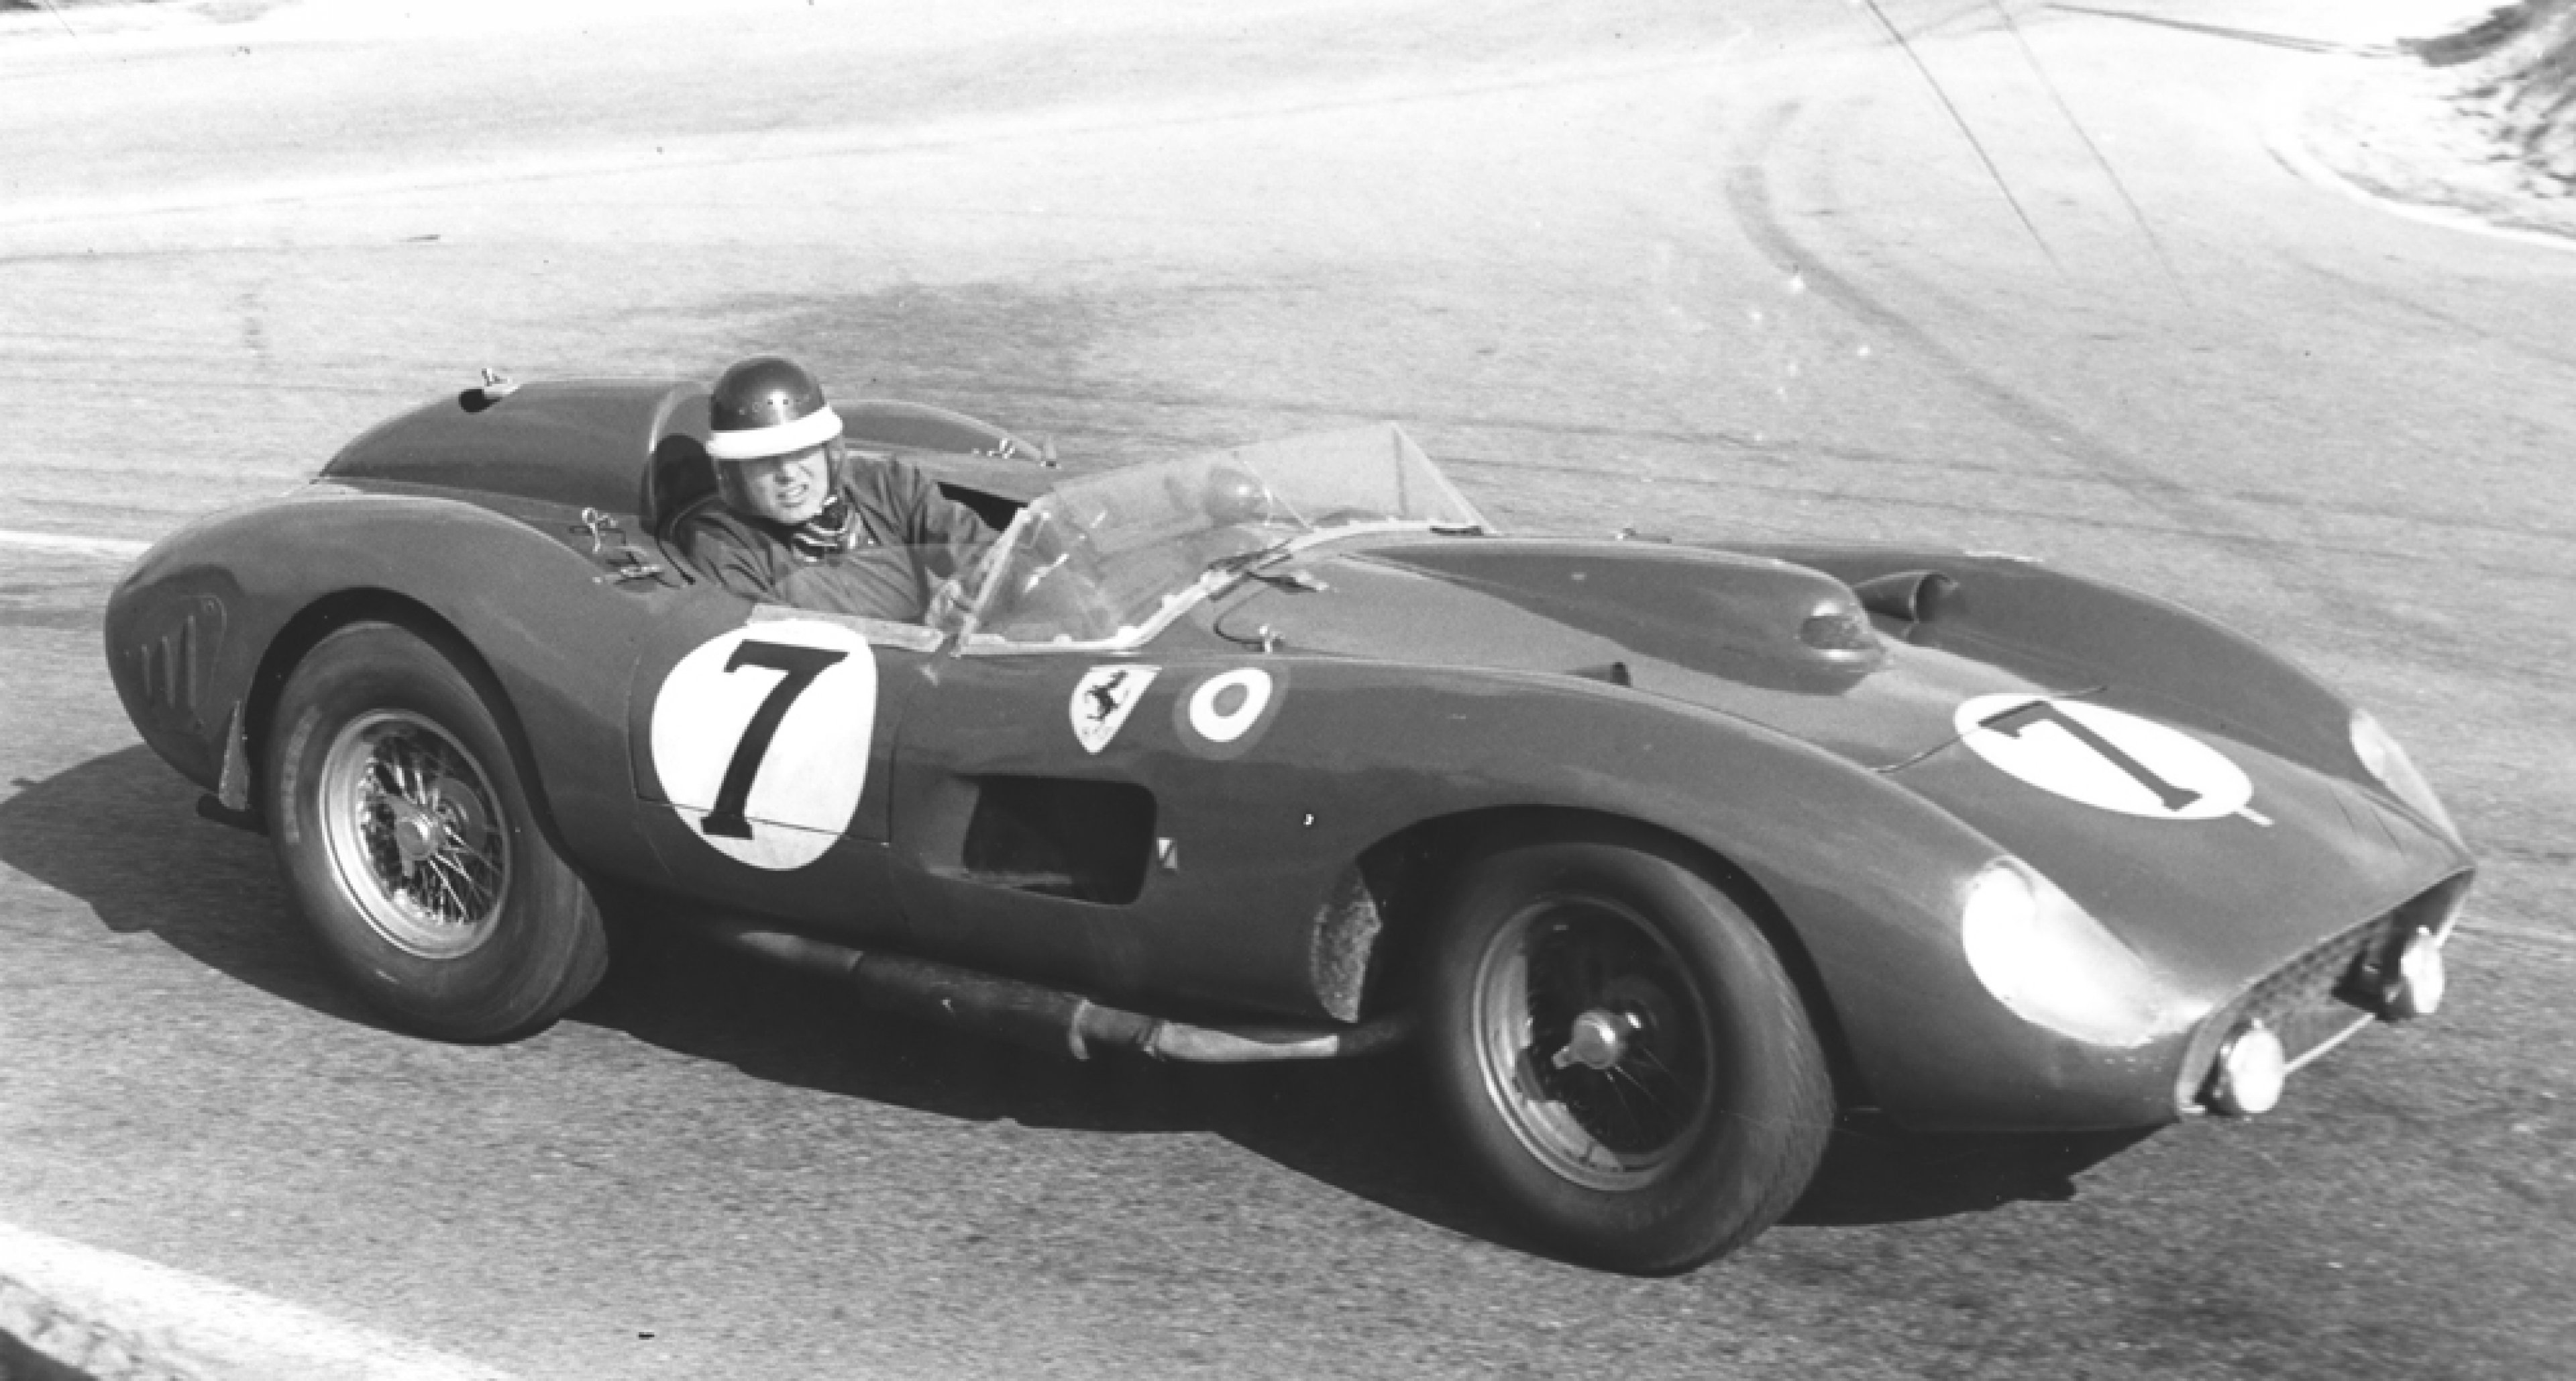 1957 Ferrari 335 S Spider Scaglietti, chassis 0674, estimate 28 - 32 M€ / 30 – 34 M$ Mike Hawthorn / Luigi Musso, 24 Heures du Mans 1957 © Rights reserved